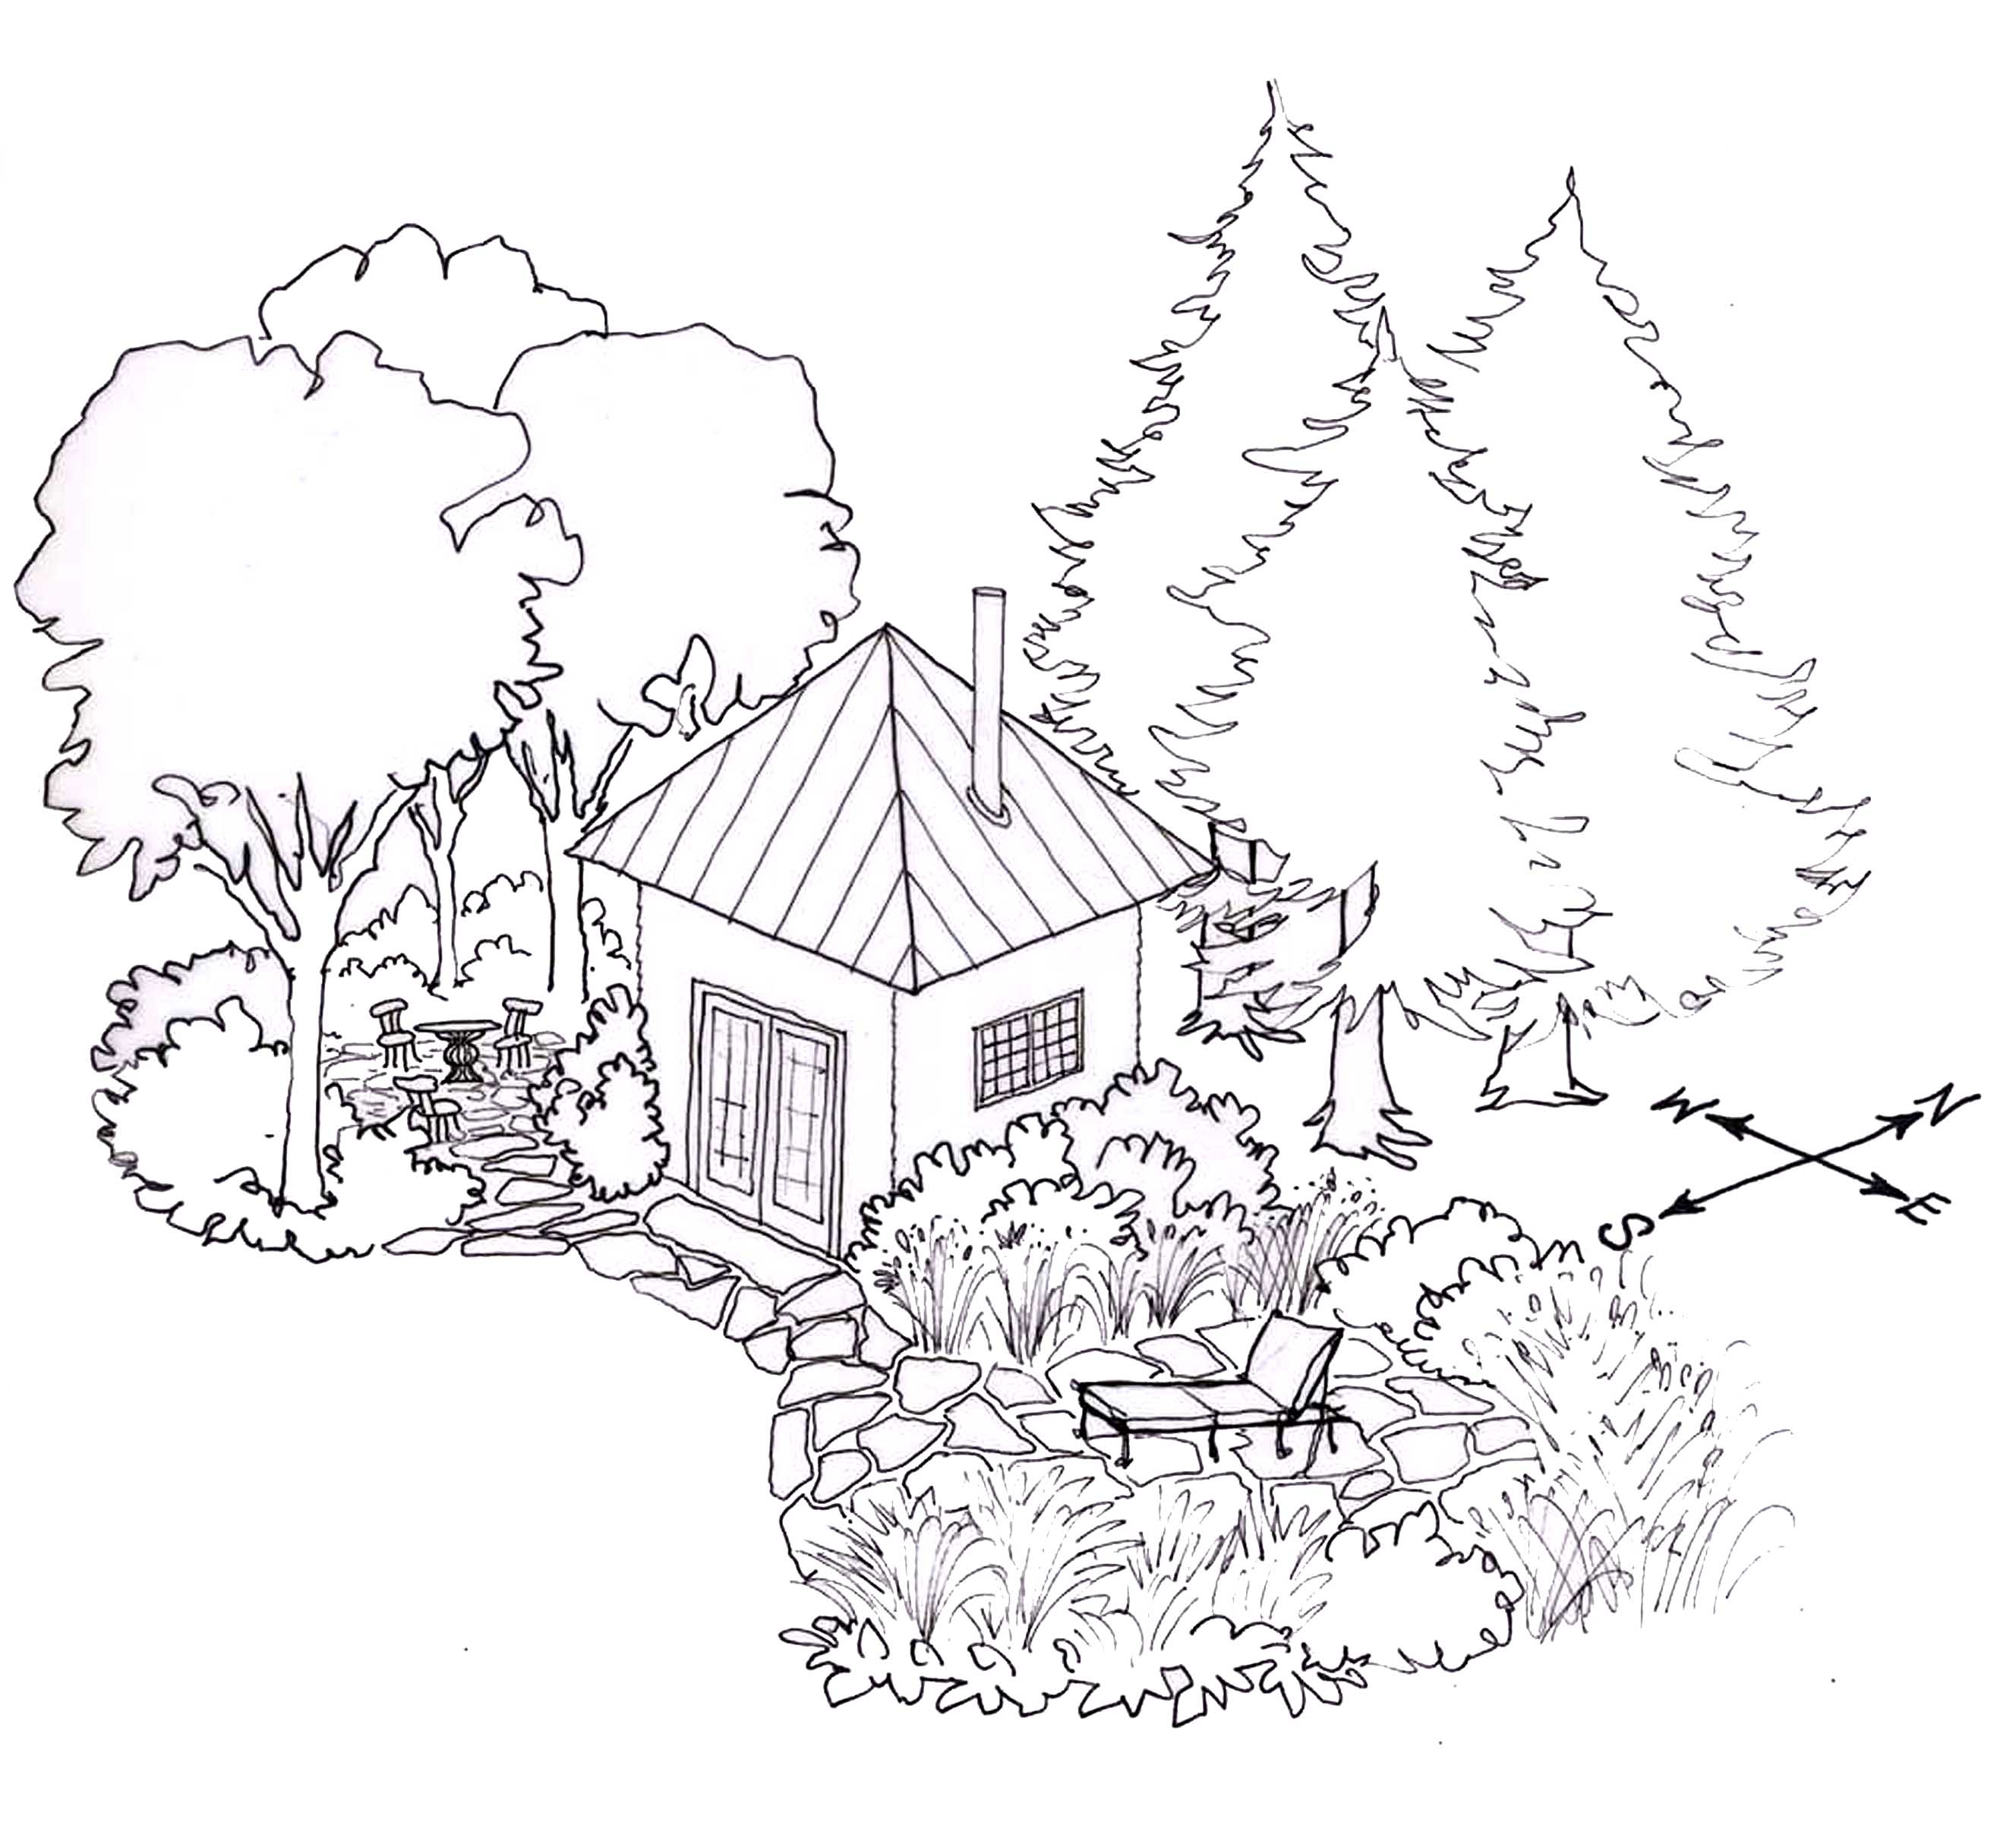 Siting your house and landscape trees. From Home Outside: Creating the Landscape You Love. Drawing by Bethany Gracia.